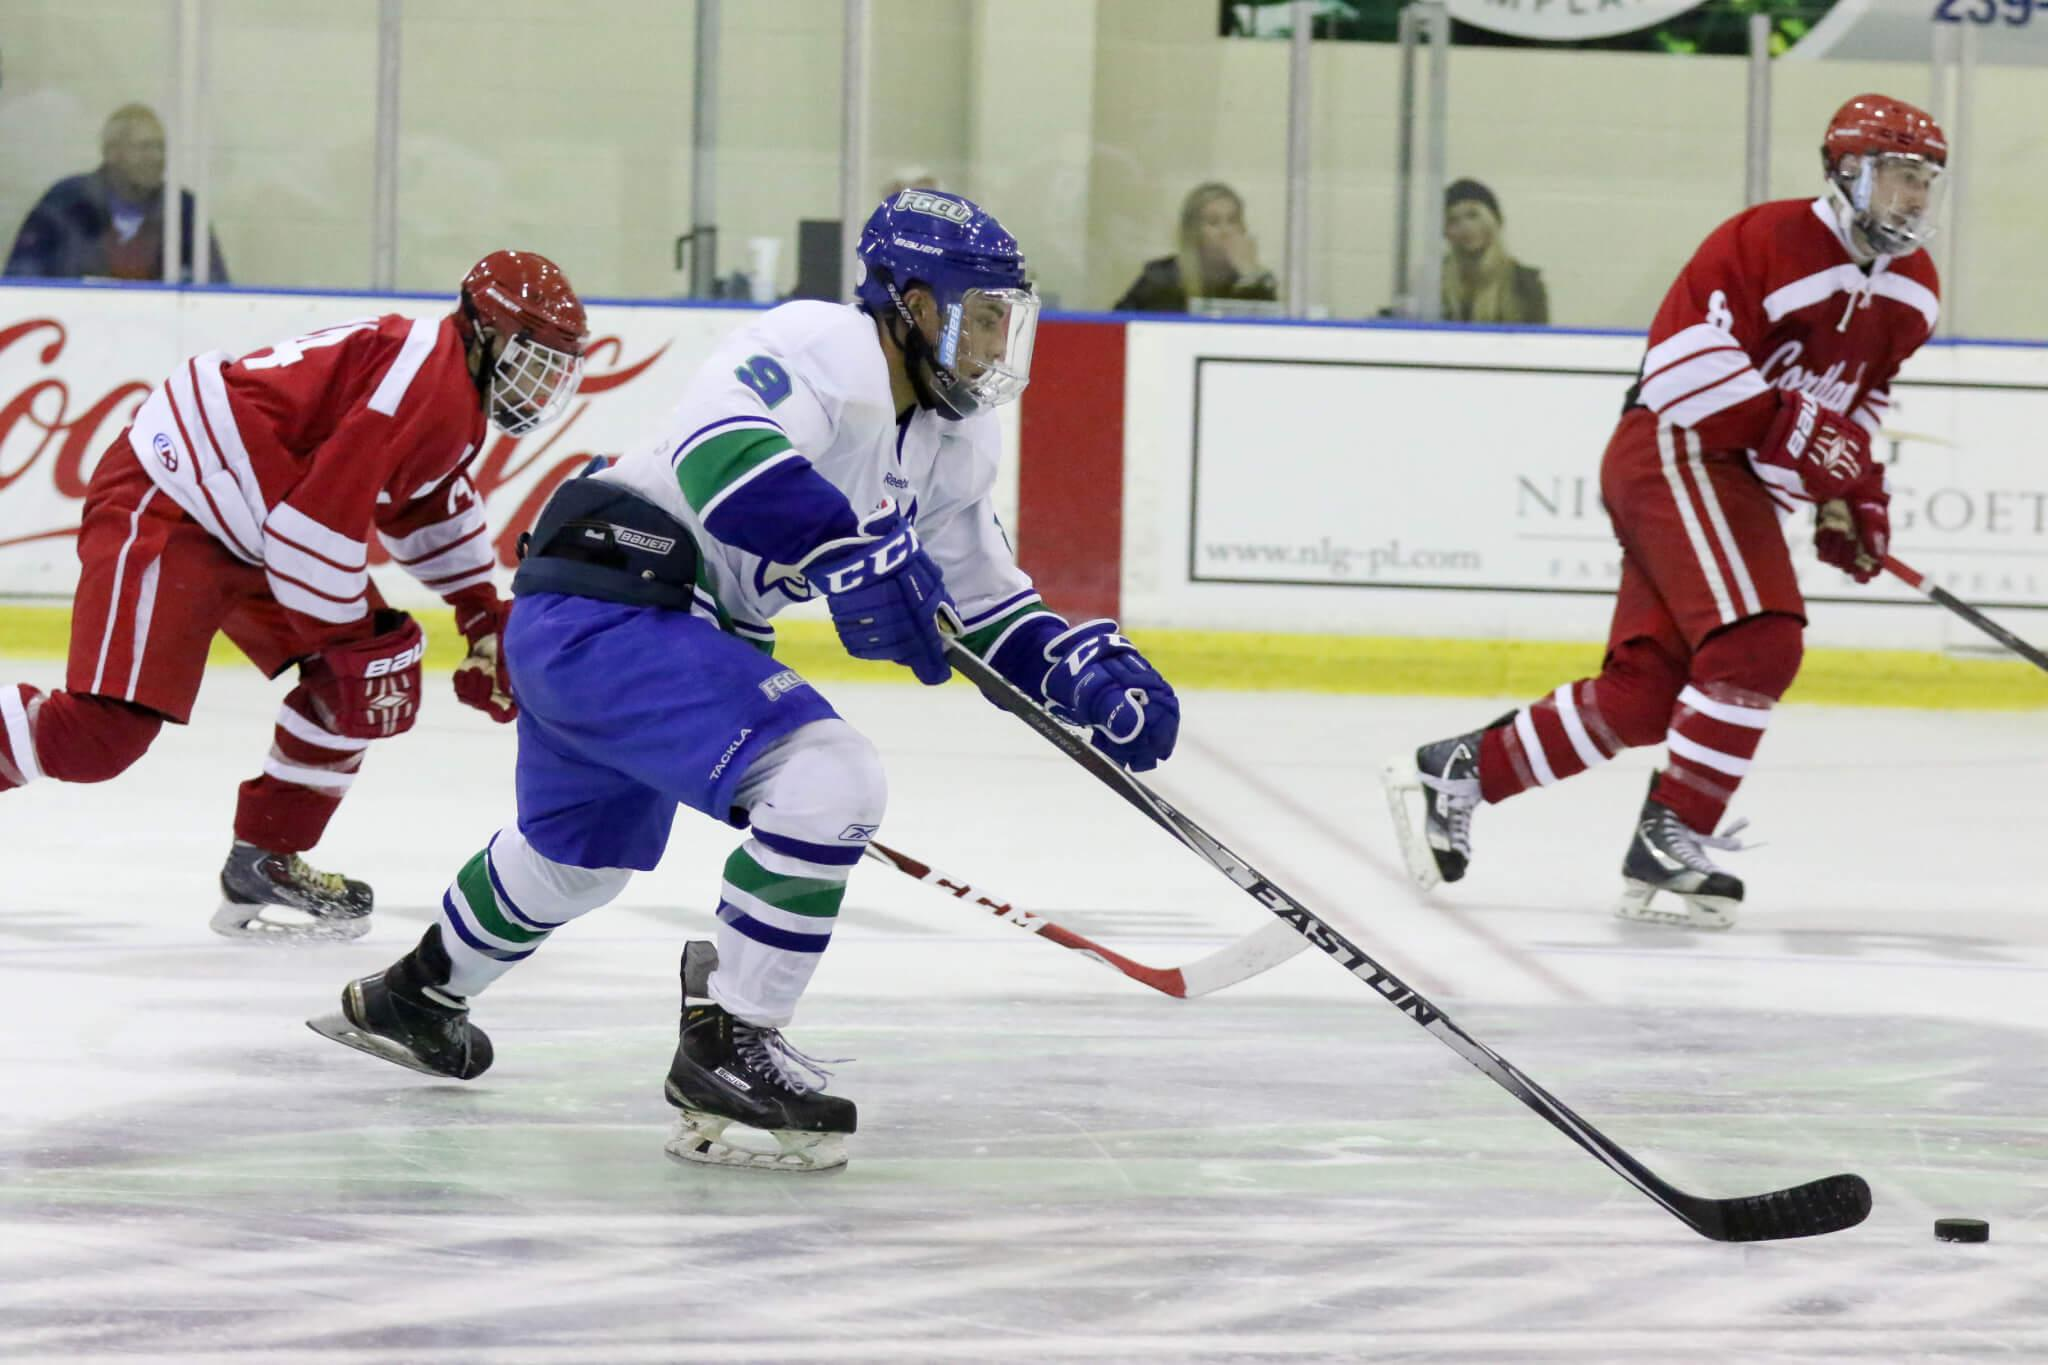 FGCU DII hockey picks up right where they left off